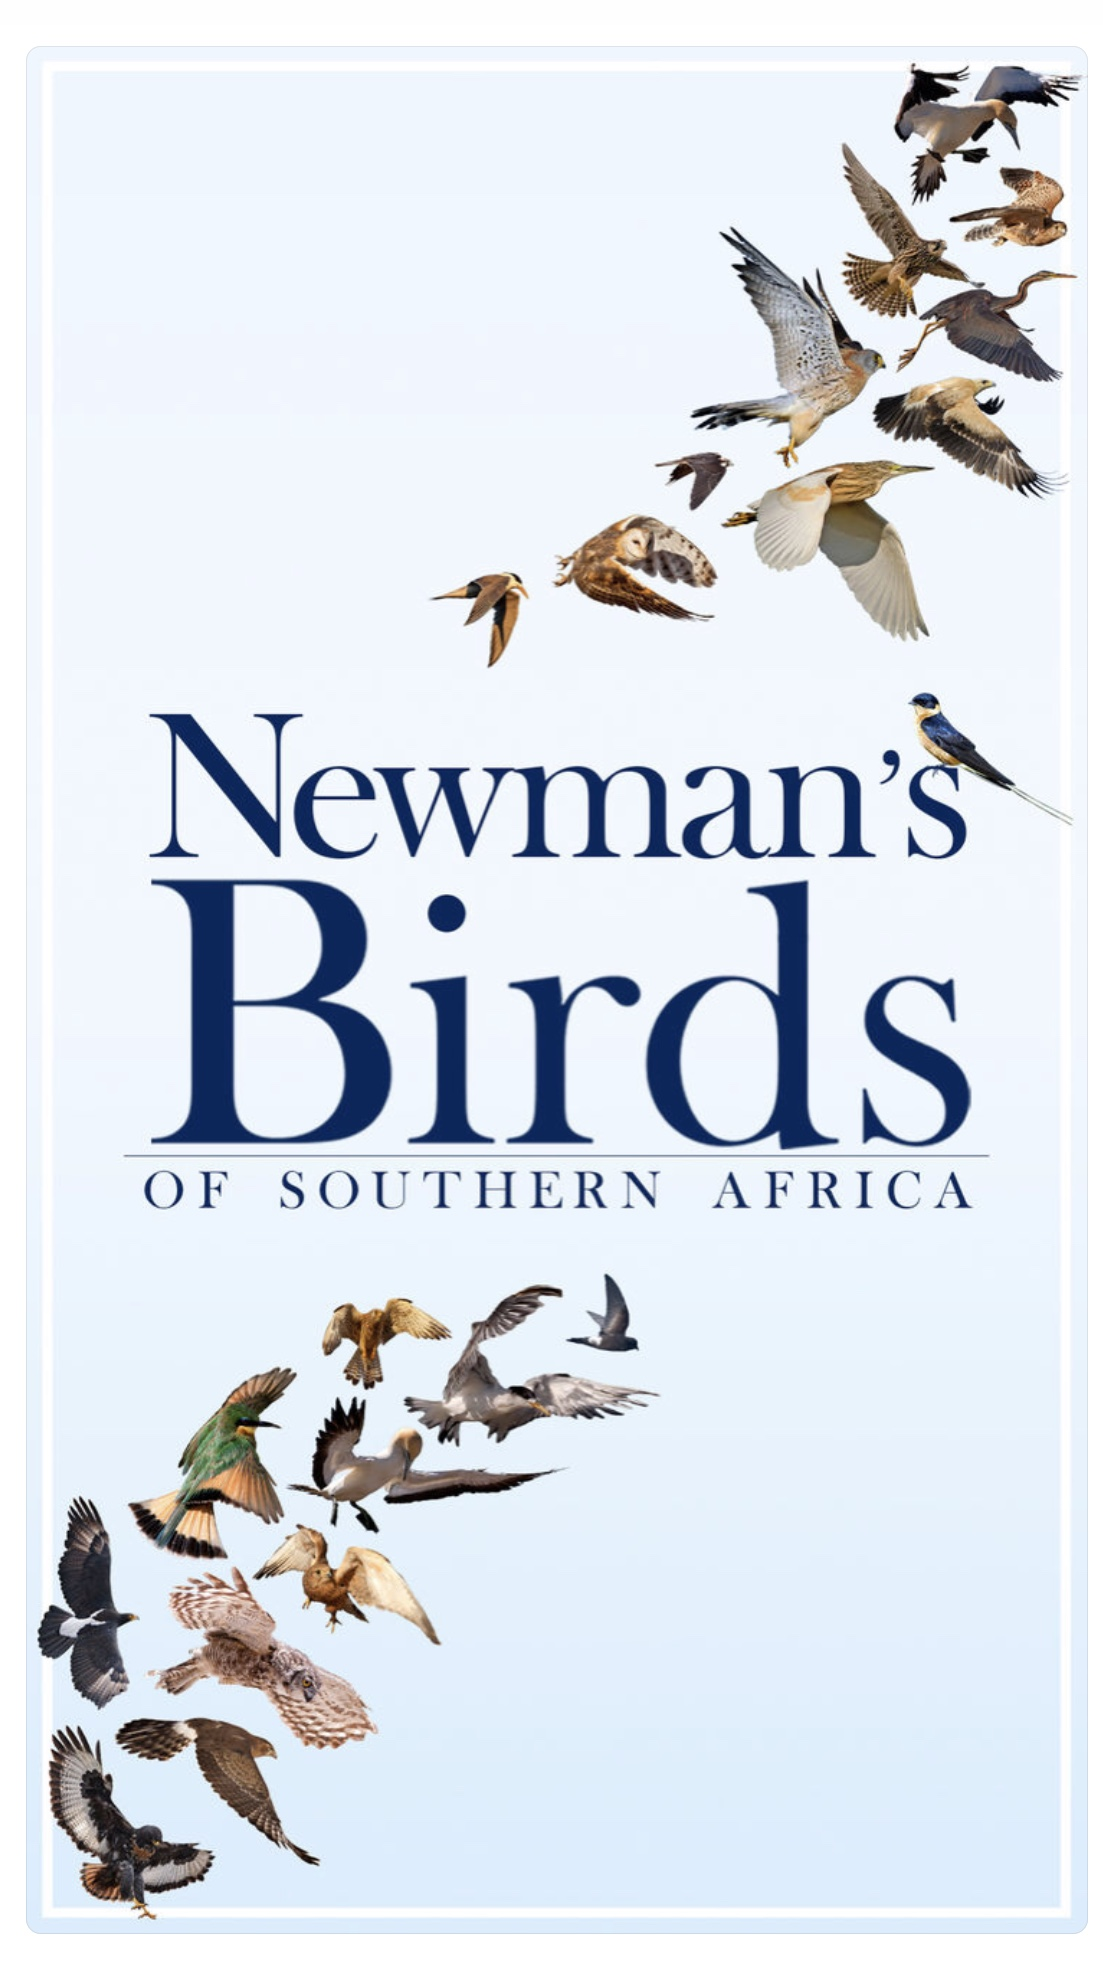 newman's birds of southern africa app.PNG